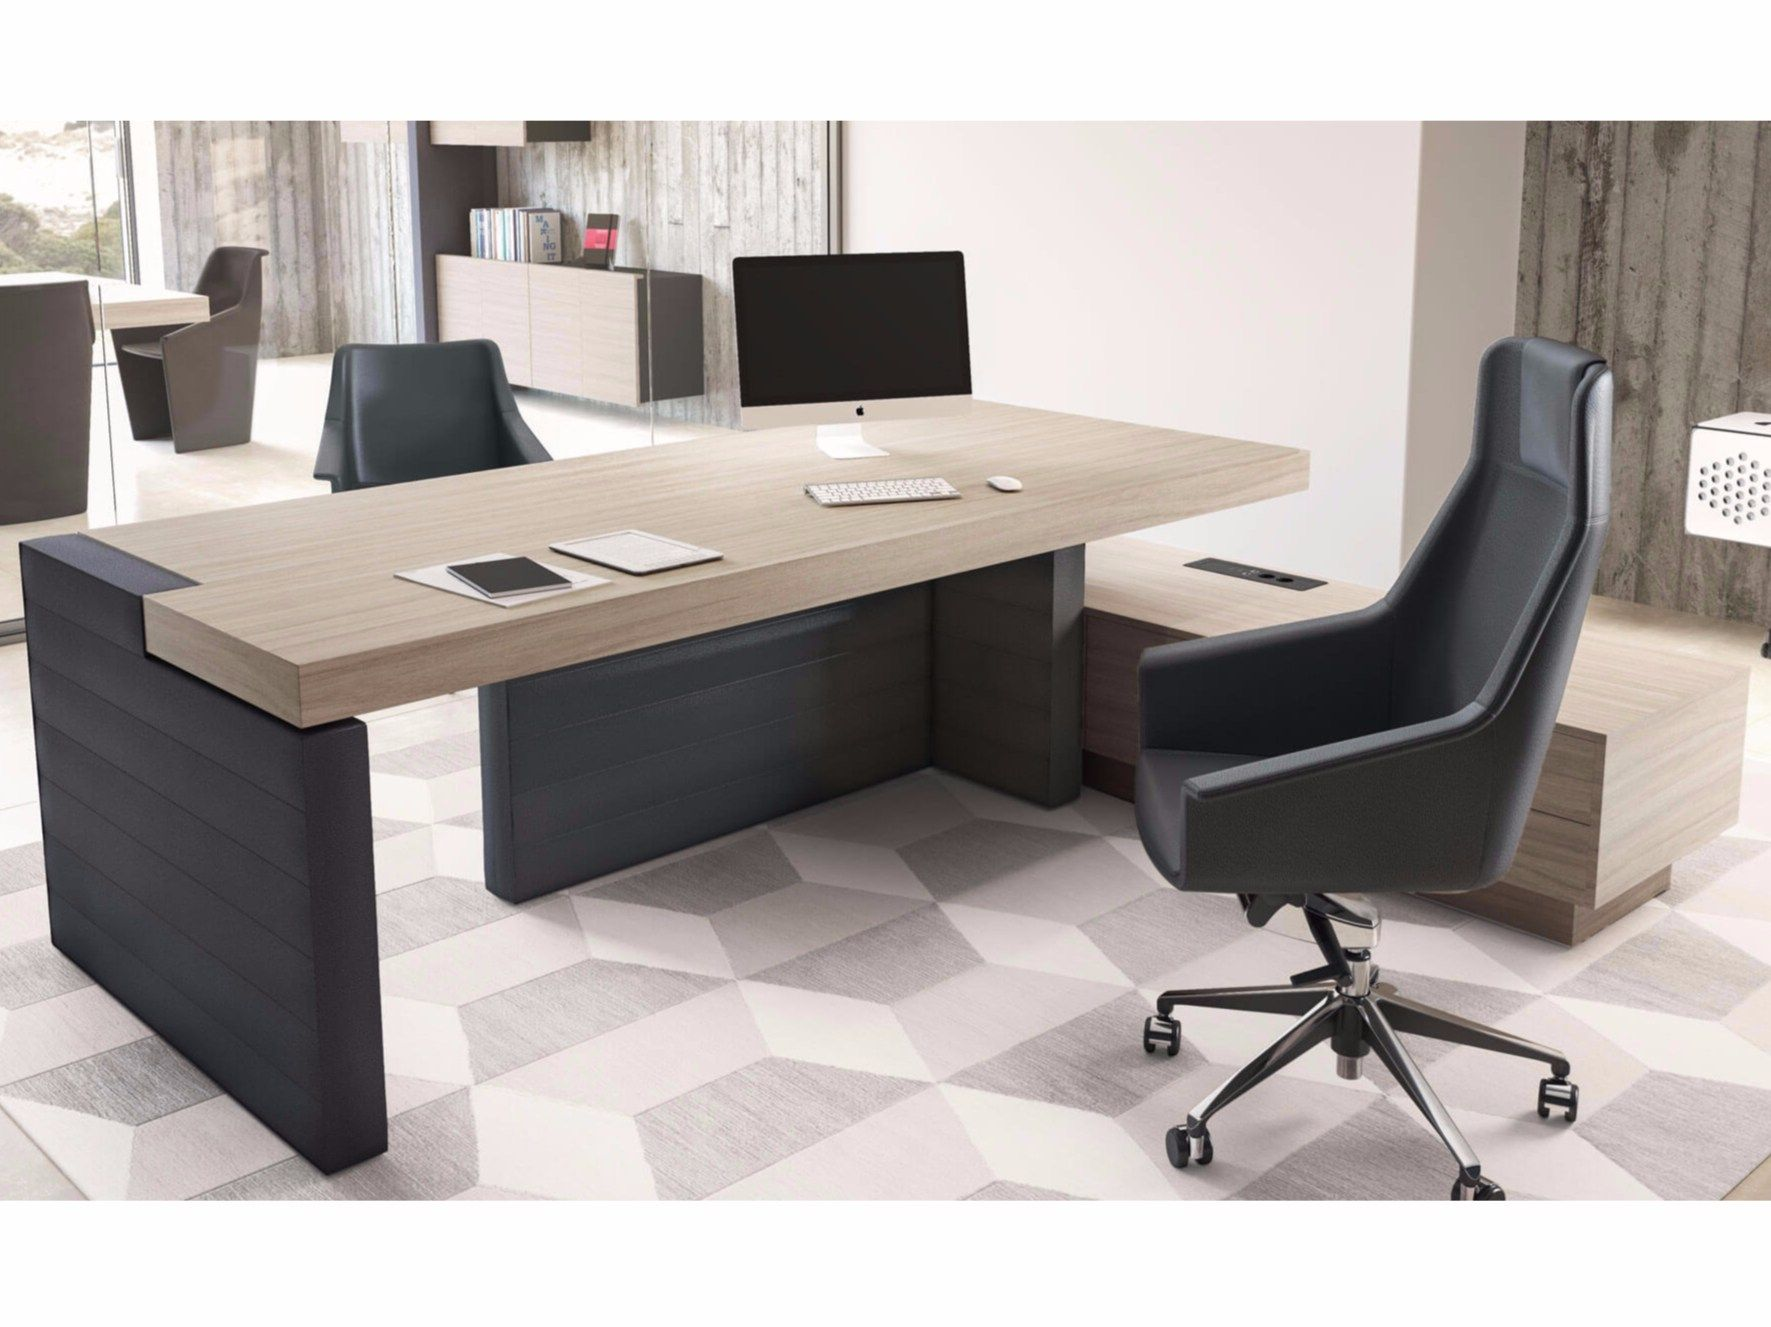 Mobili Furniture L Shaped Executive Desk With Shelves Jera Office Desk With